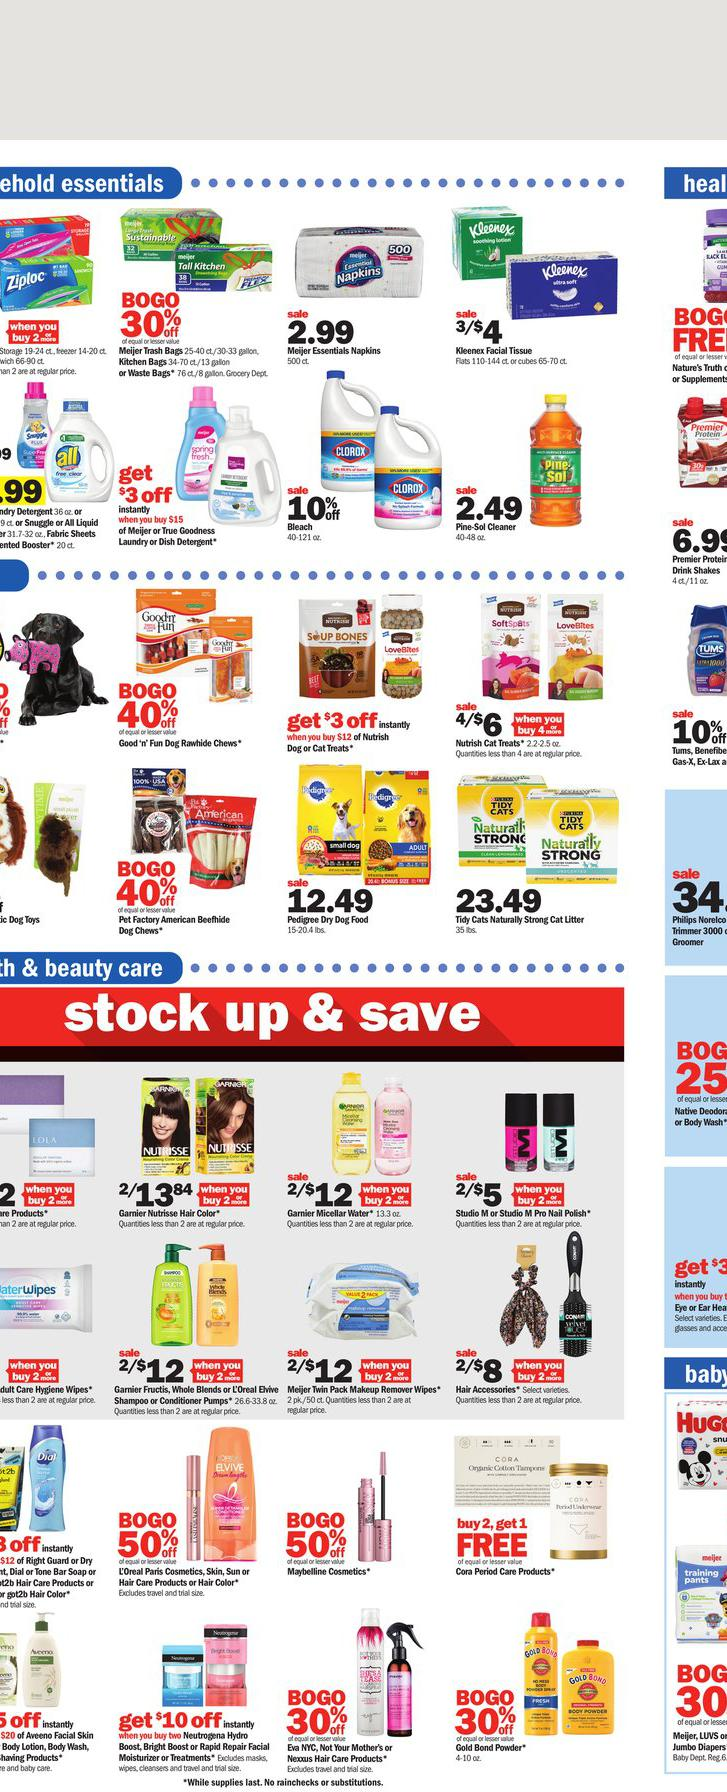 01.08.2021 Meijer ad 16. page